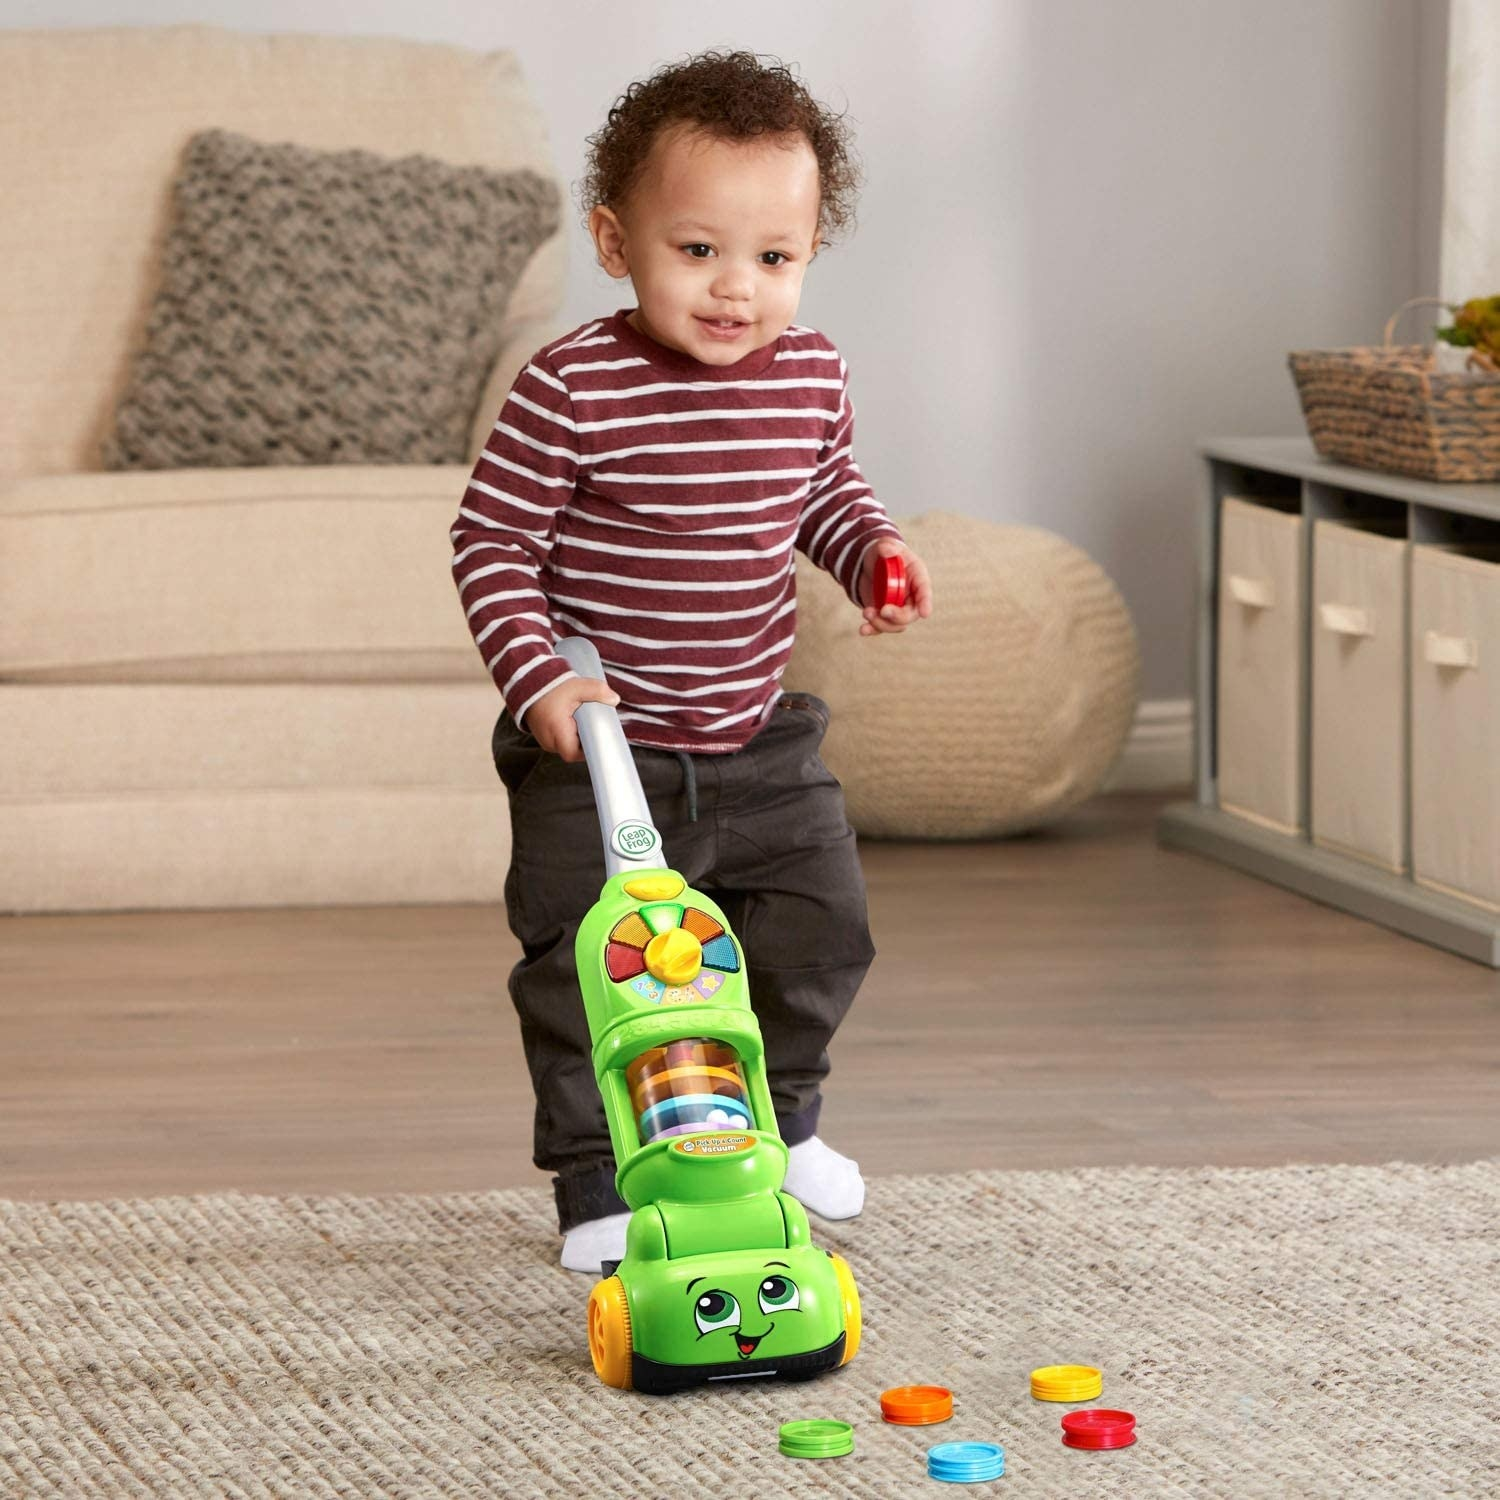 A child model playing with a green plastic vacuum with mult-colored discs